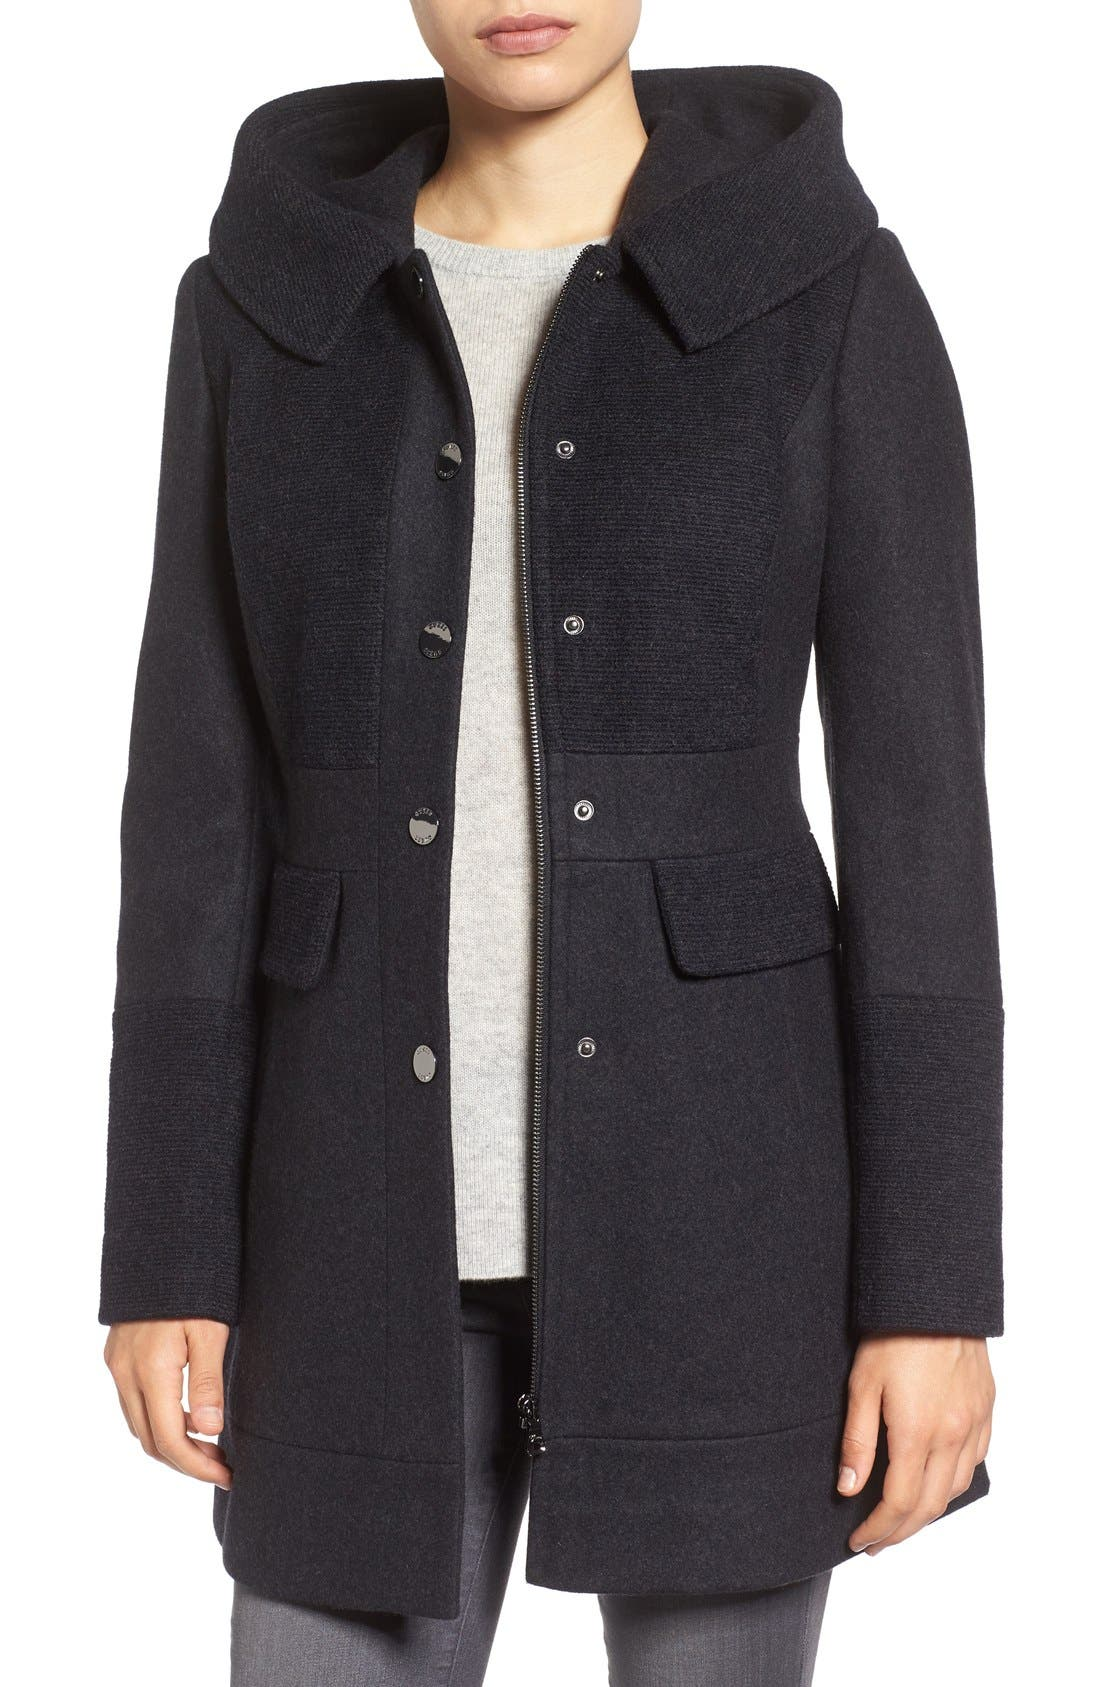 Wool Blend Hooded Coat,                             Main thumbnail 1, color,                             Charcoal/ Black